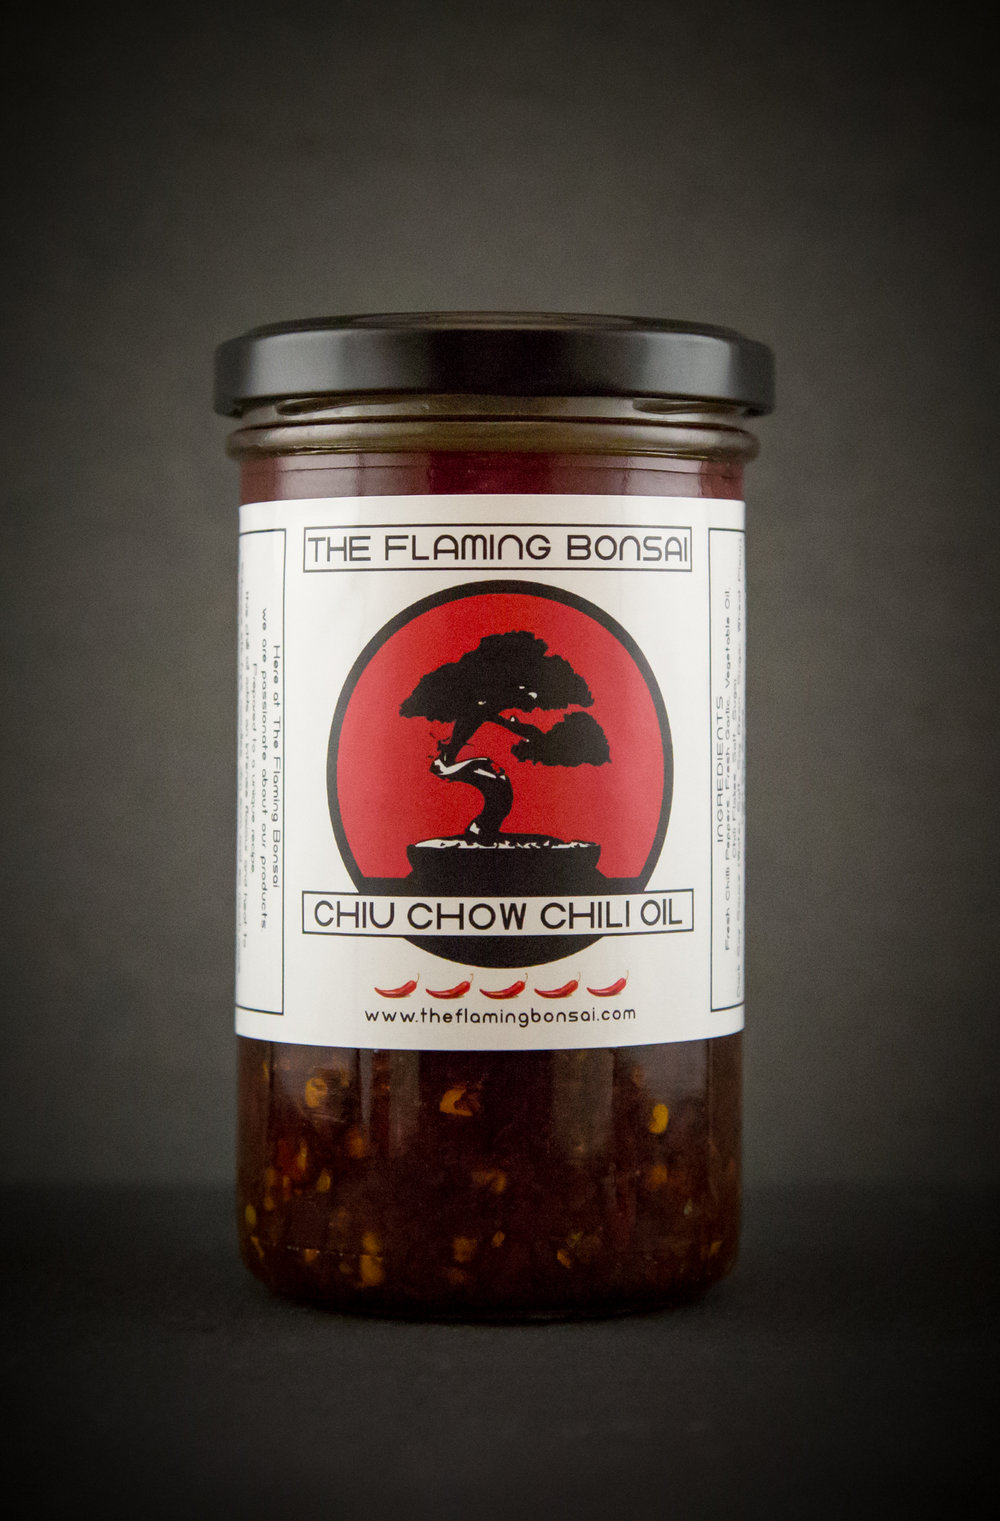 Flaming Bonsai Chiu Chow Chili Oil